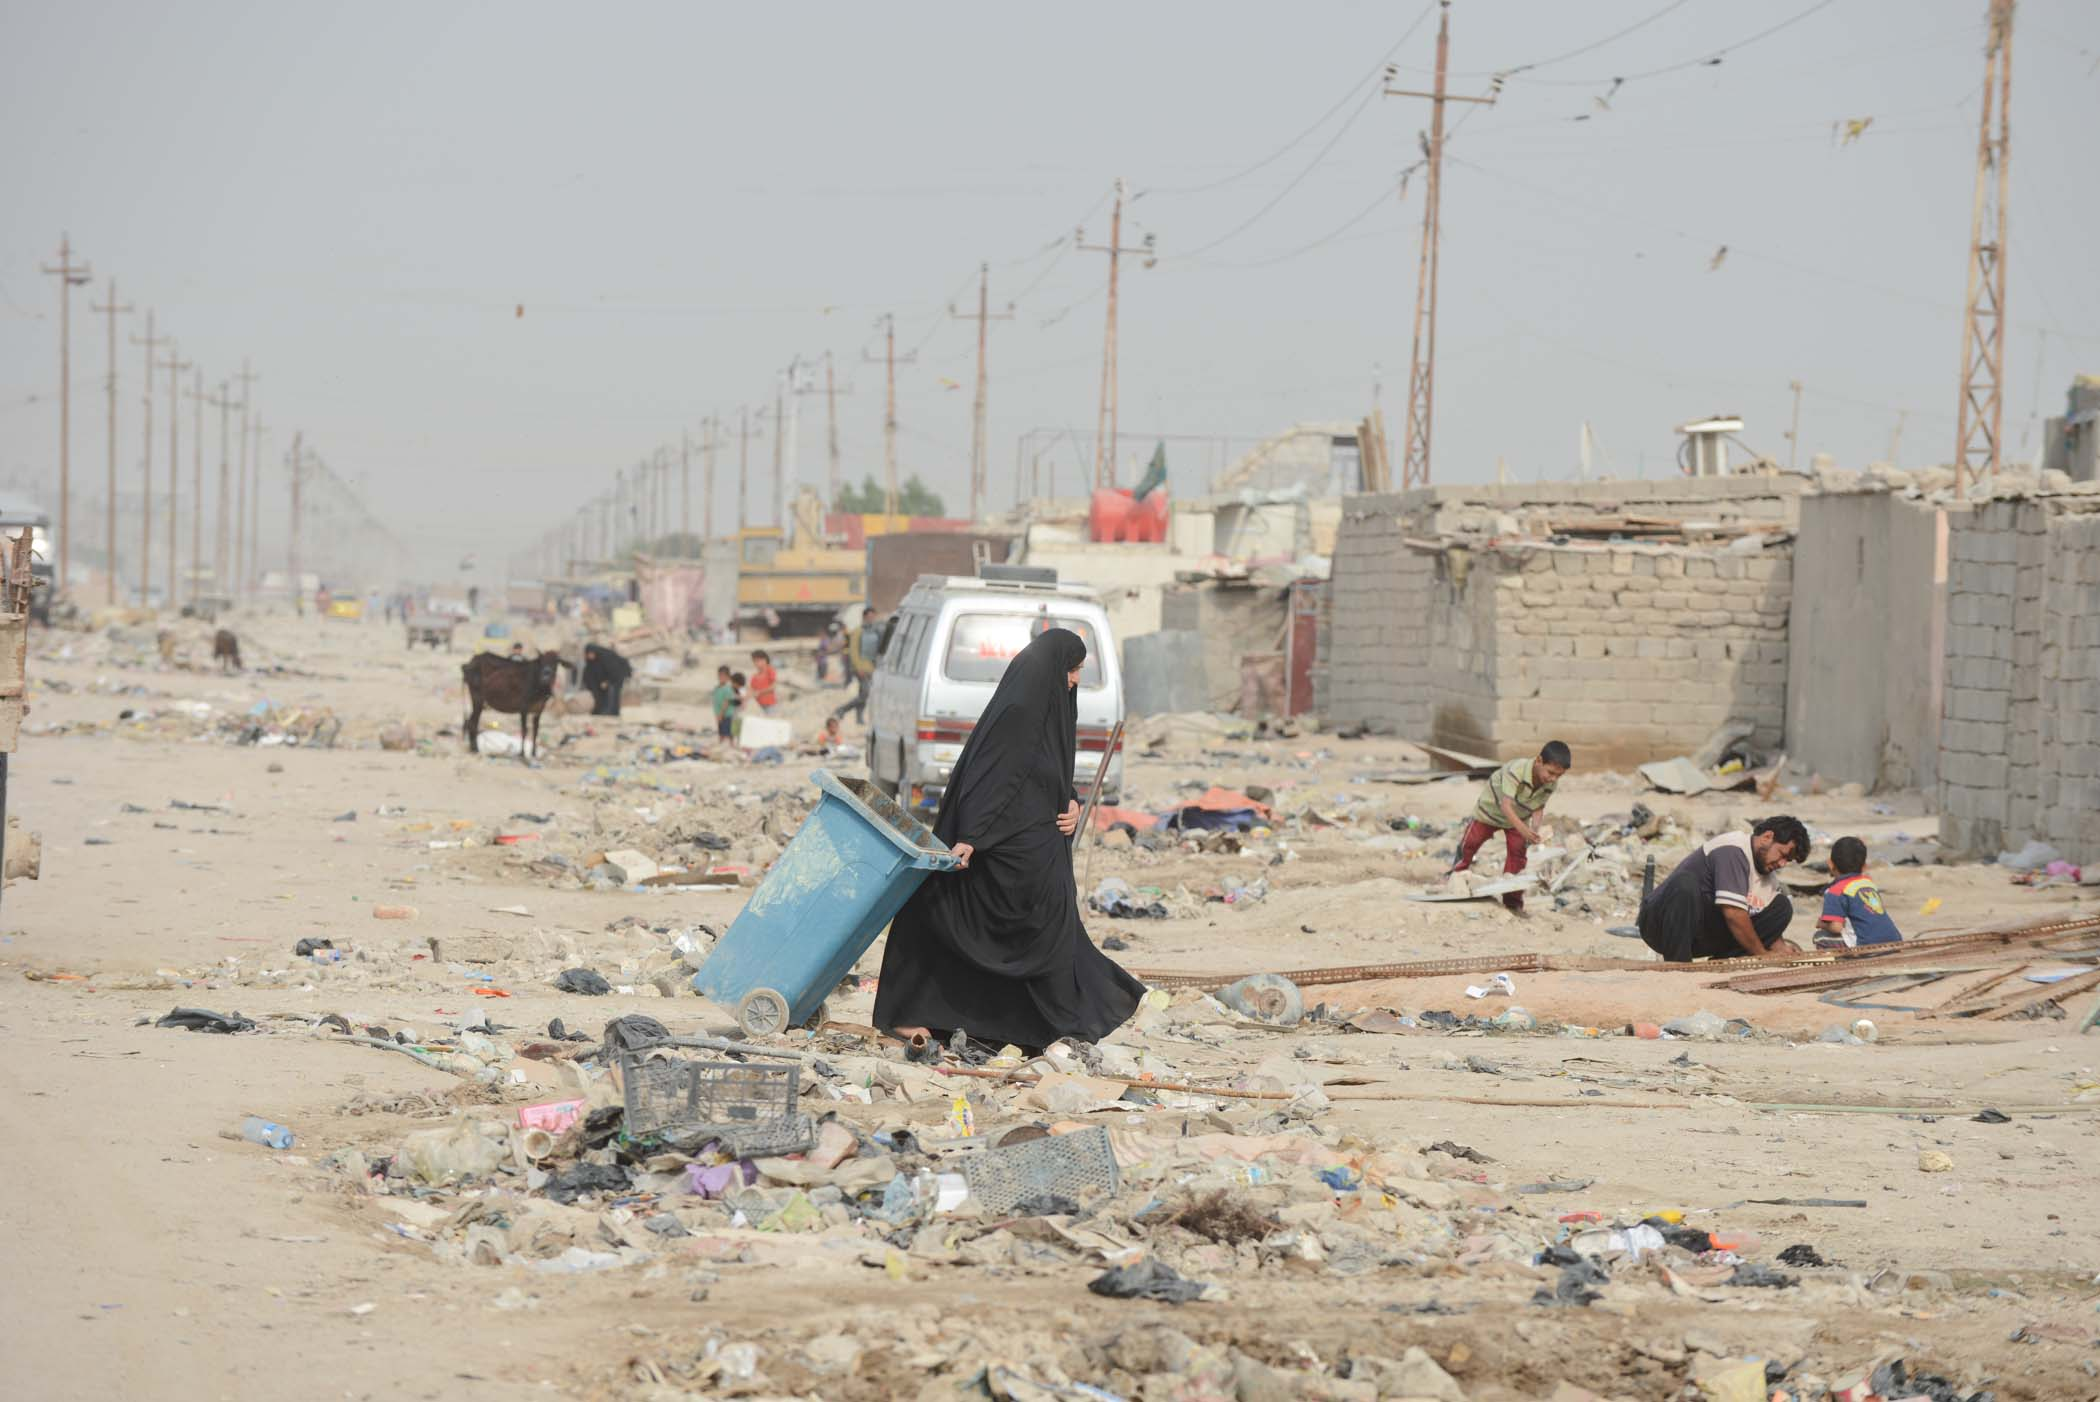 A Woman Drags A Rubbish Bin Across The Litter-filled Streets Close To Basra